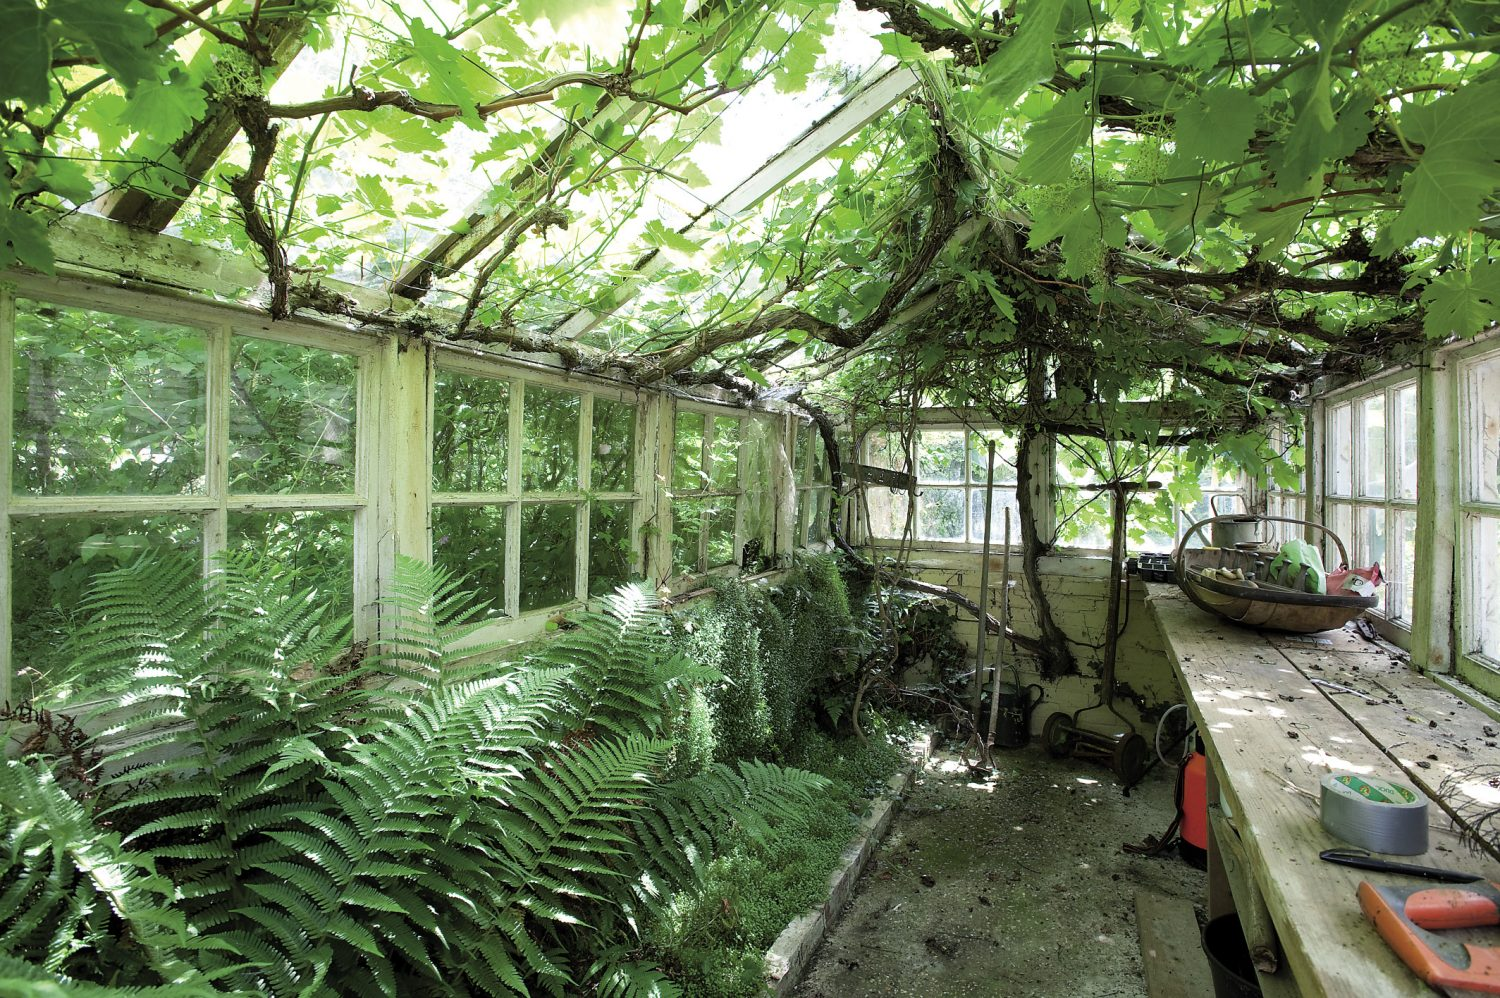 An enchanting old glasshouse that is almost overtaken by ferns and grapevines